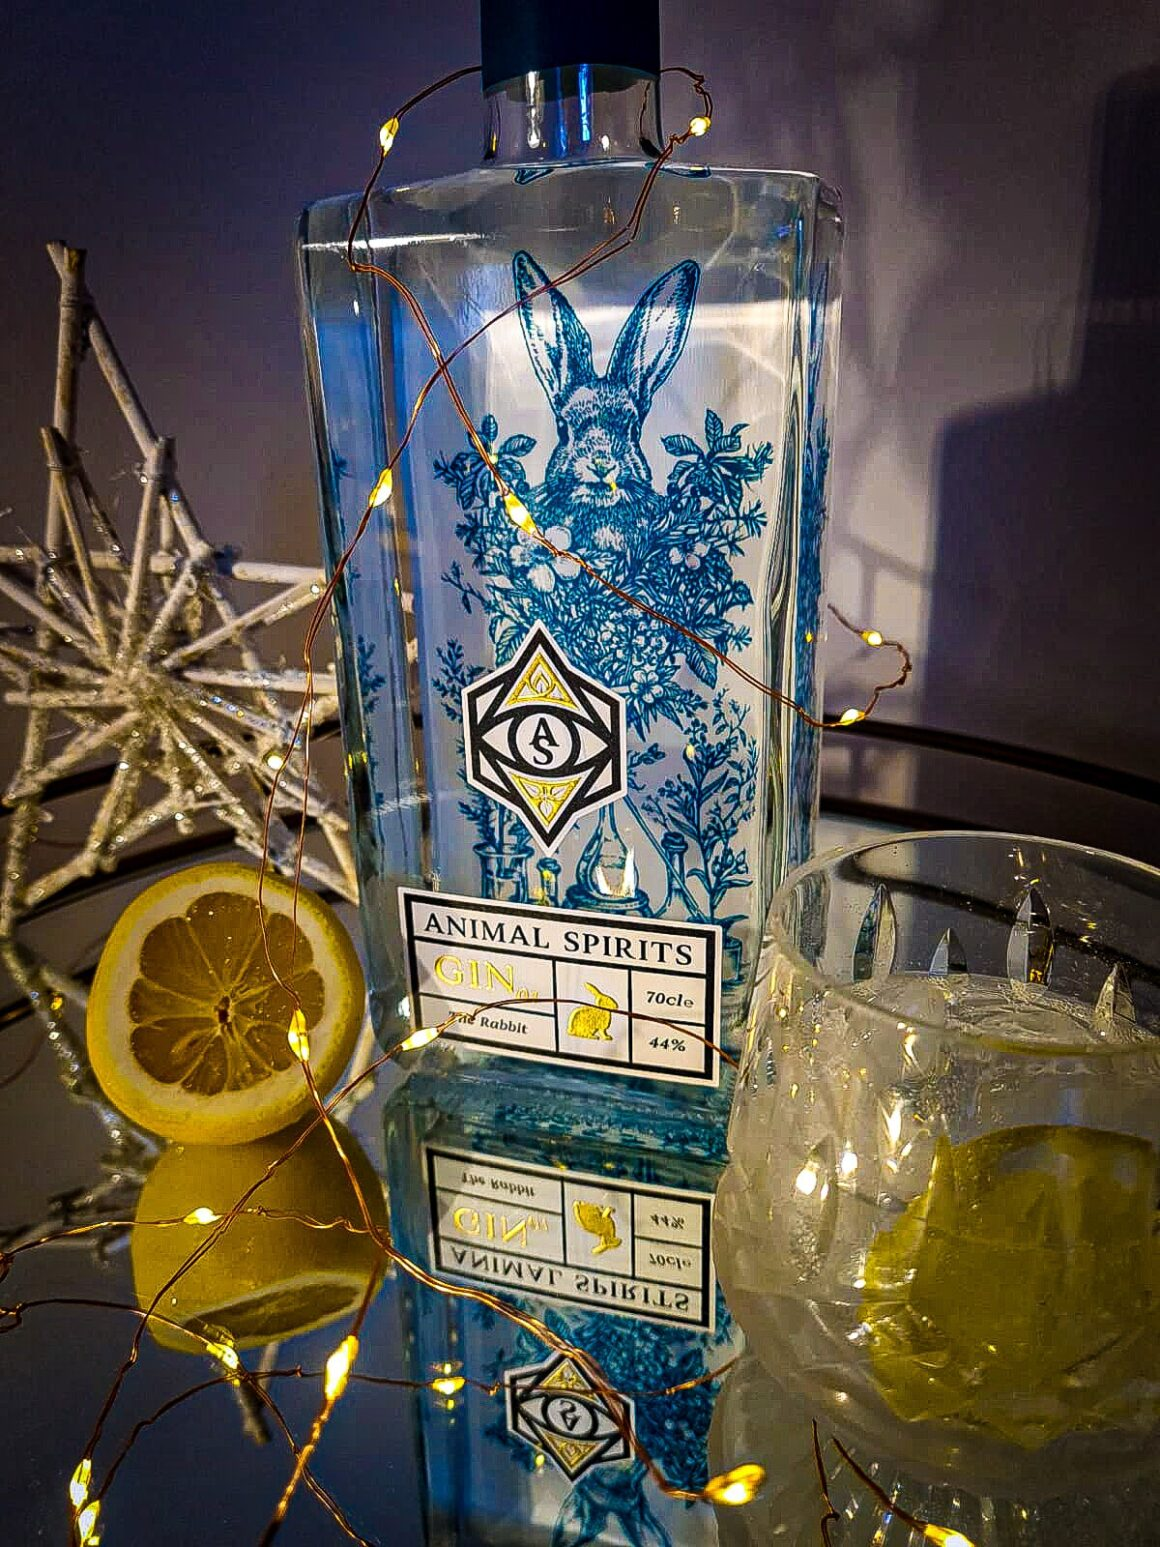 A Brilliantly British Gin - Animal Spirits Launches With The Rabbit GIN